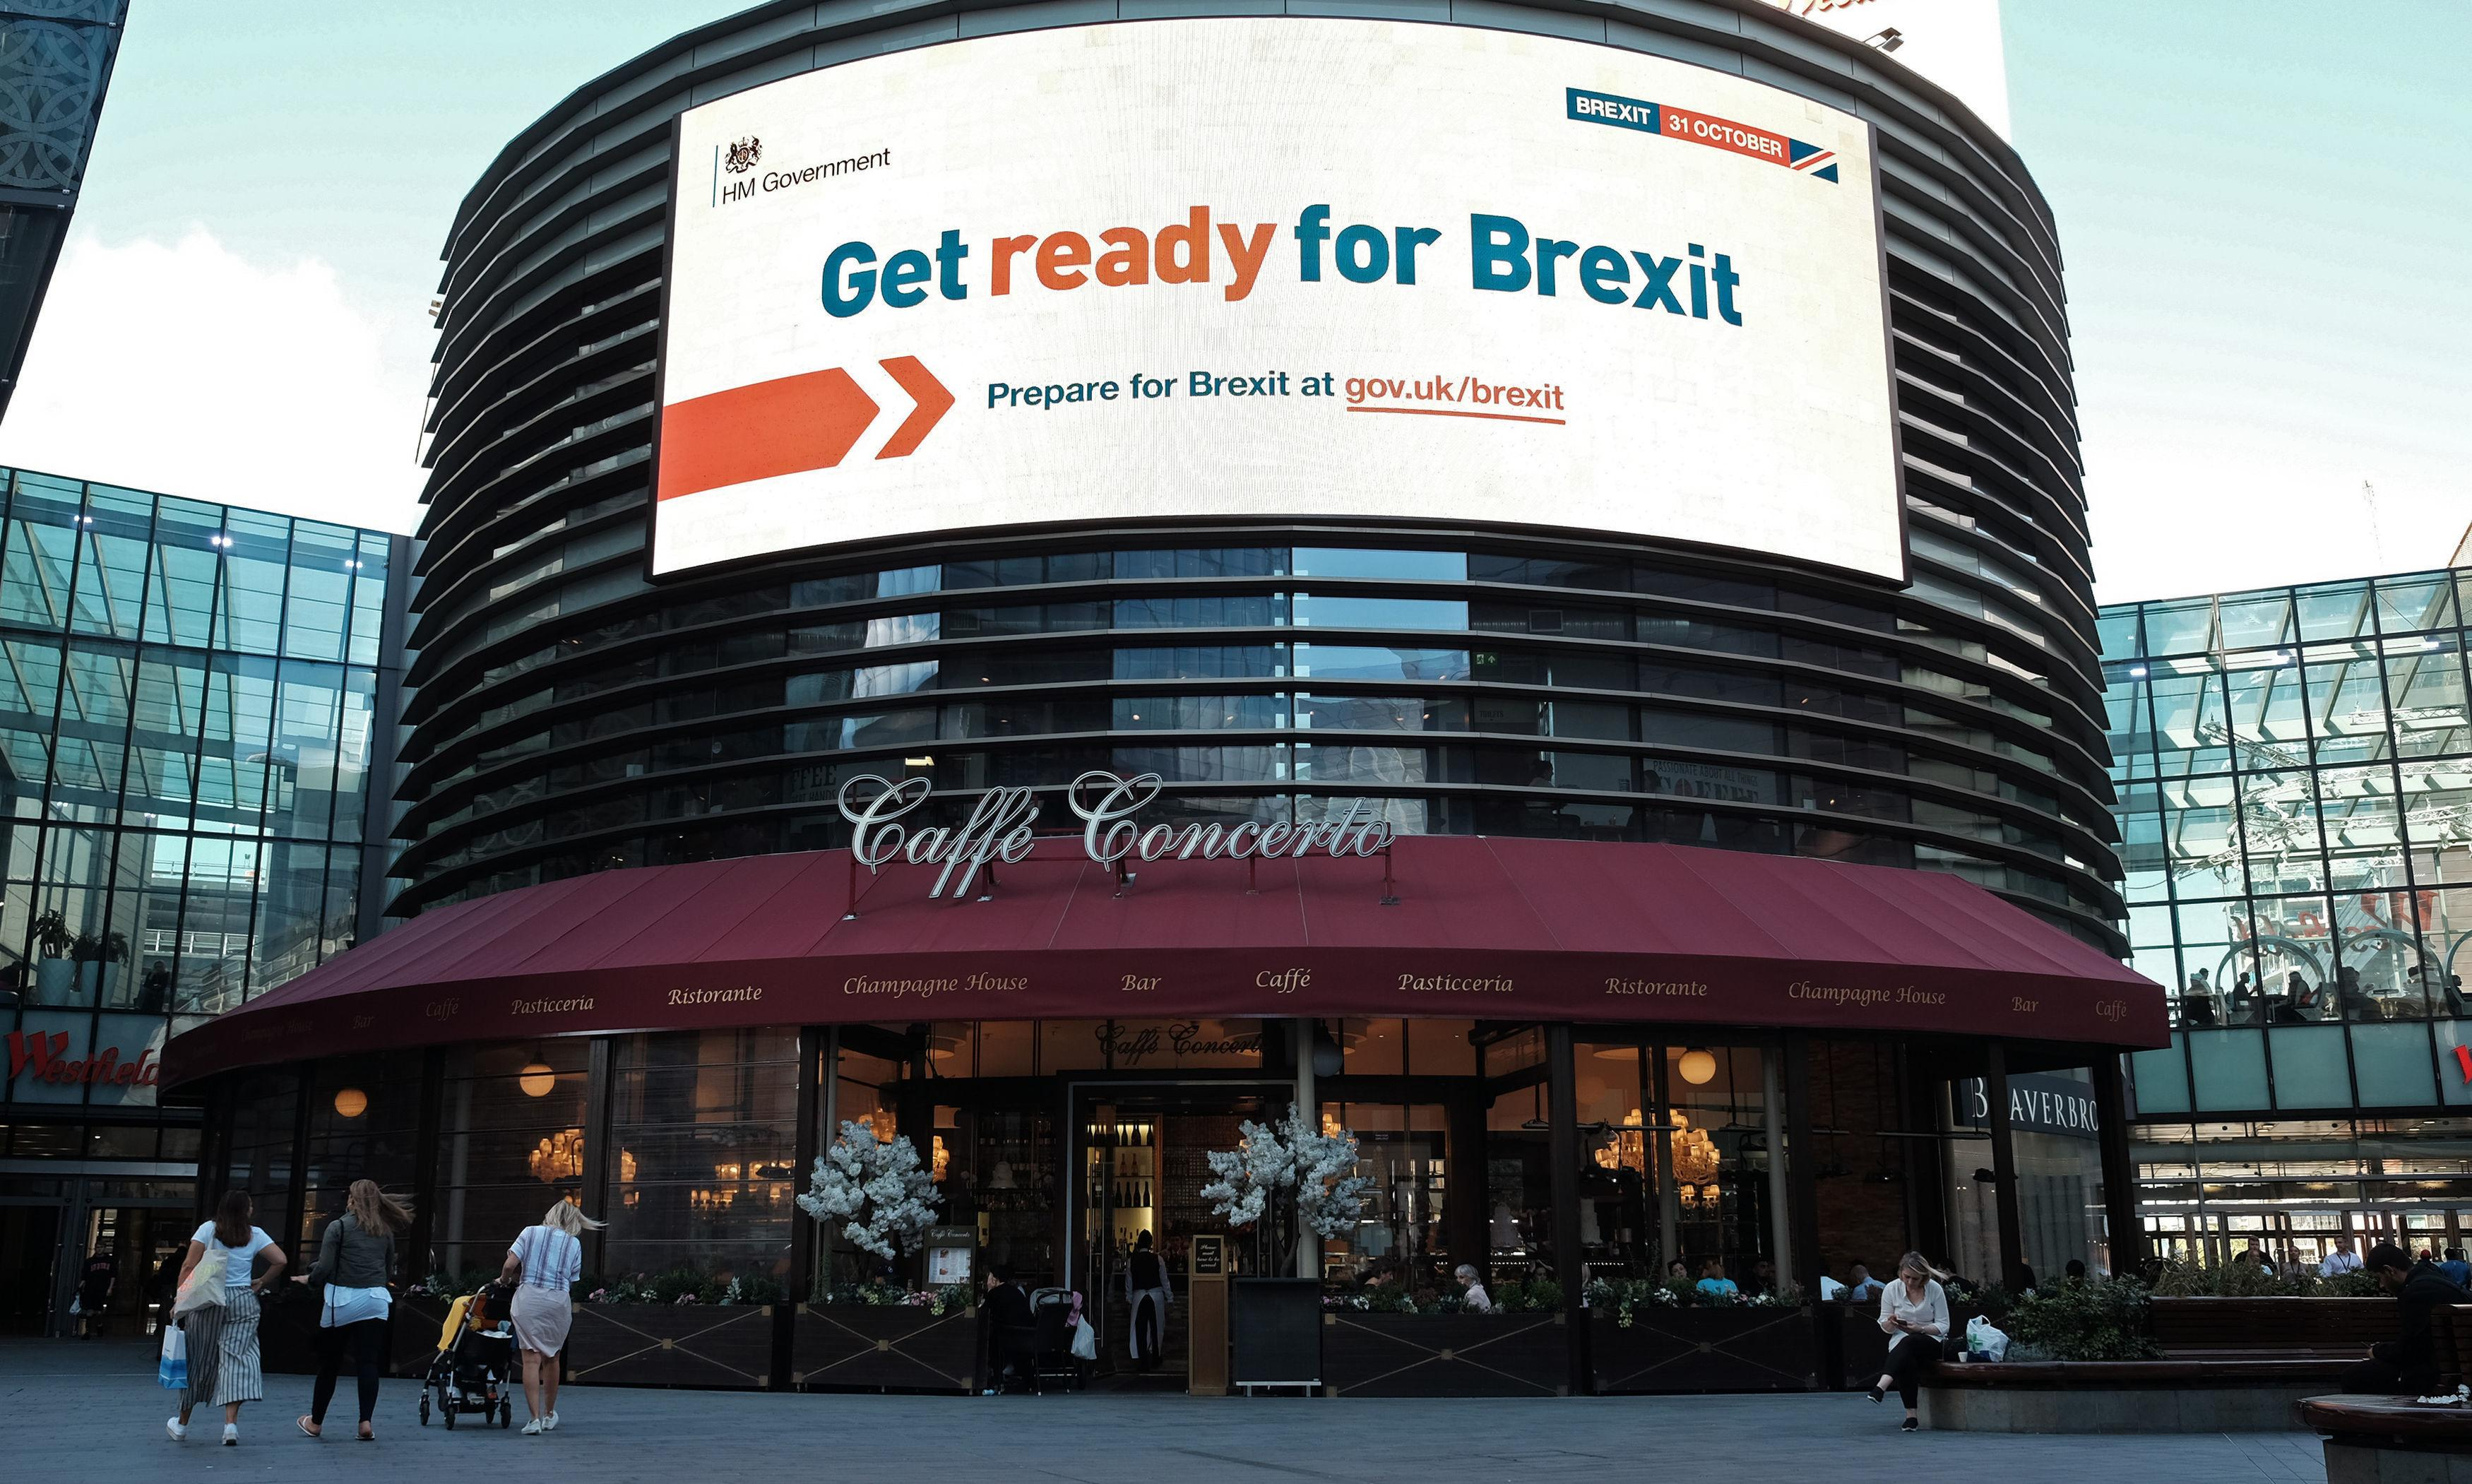 'Get Ready for Brexit' campaign had little effect, says watchdog